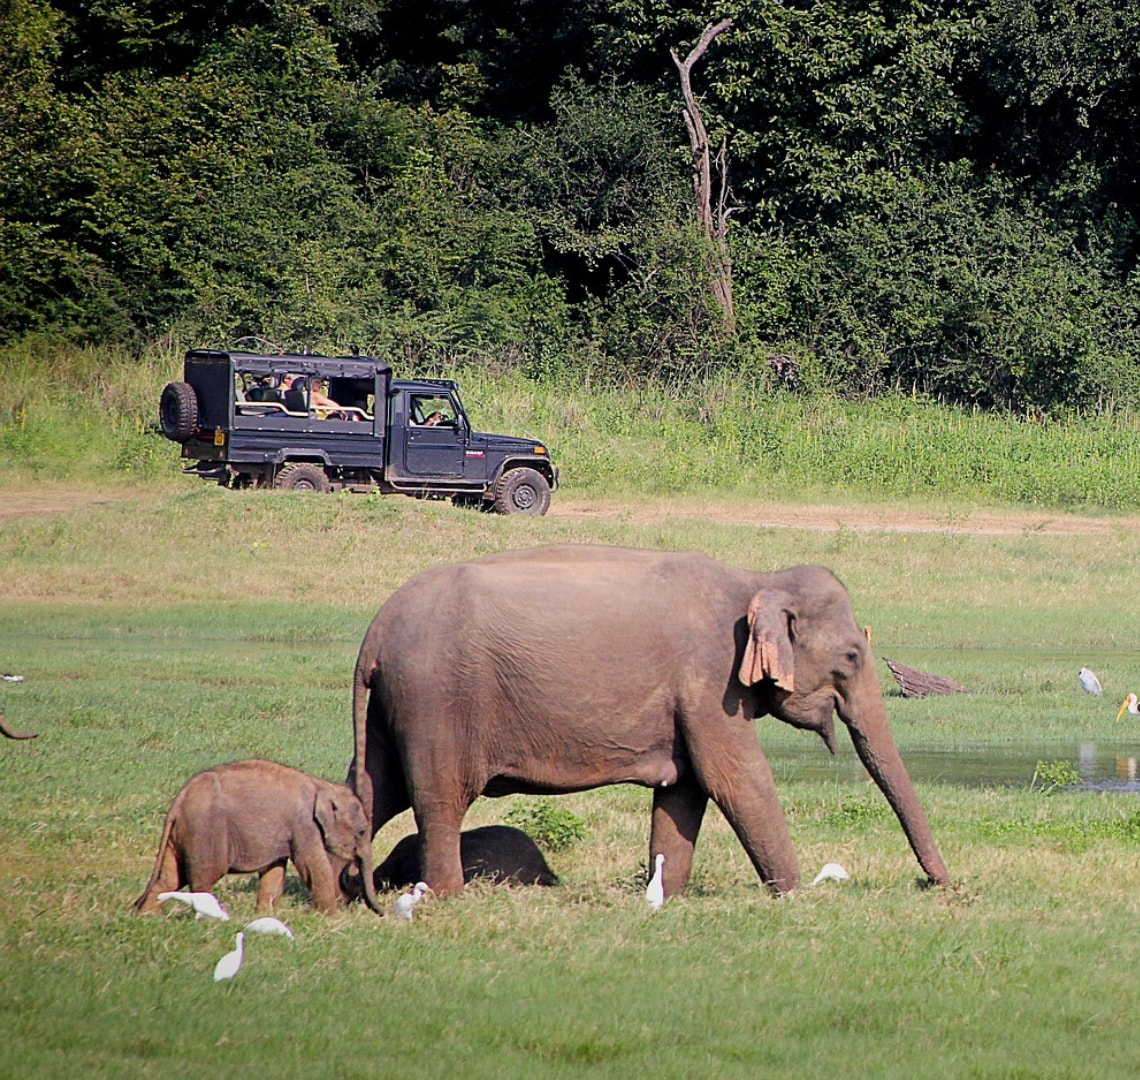 Namibia Reading - A mother elephant and her baby walking lush green grass while there is a safari jeep in the background